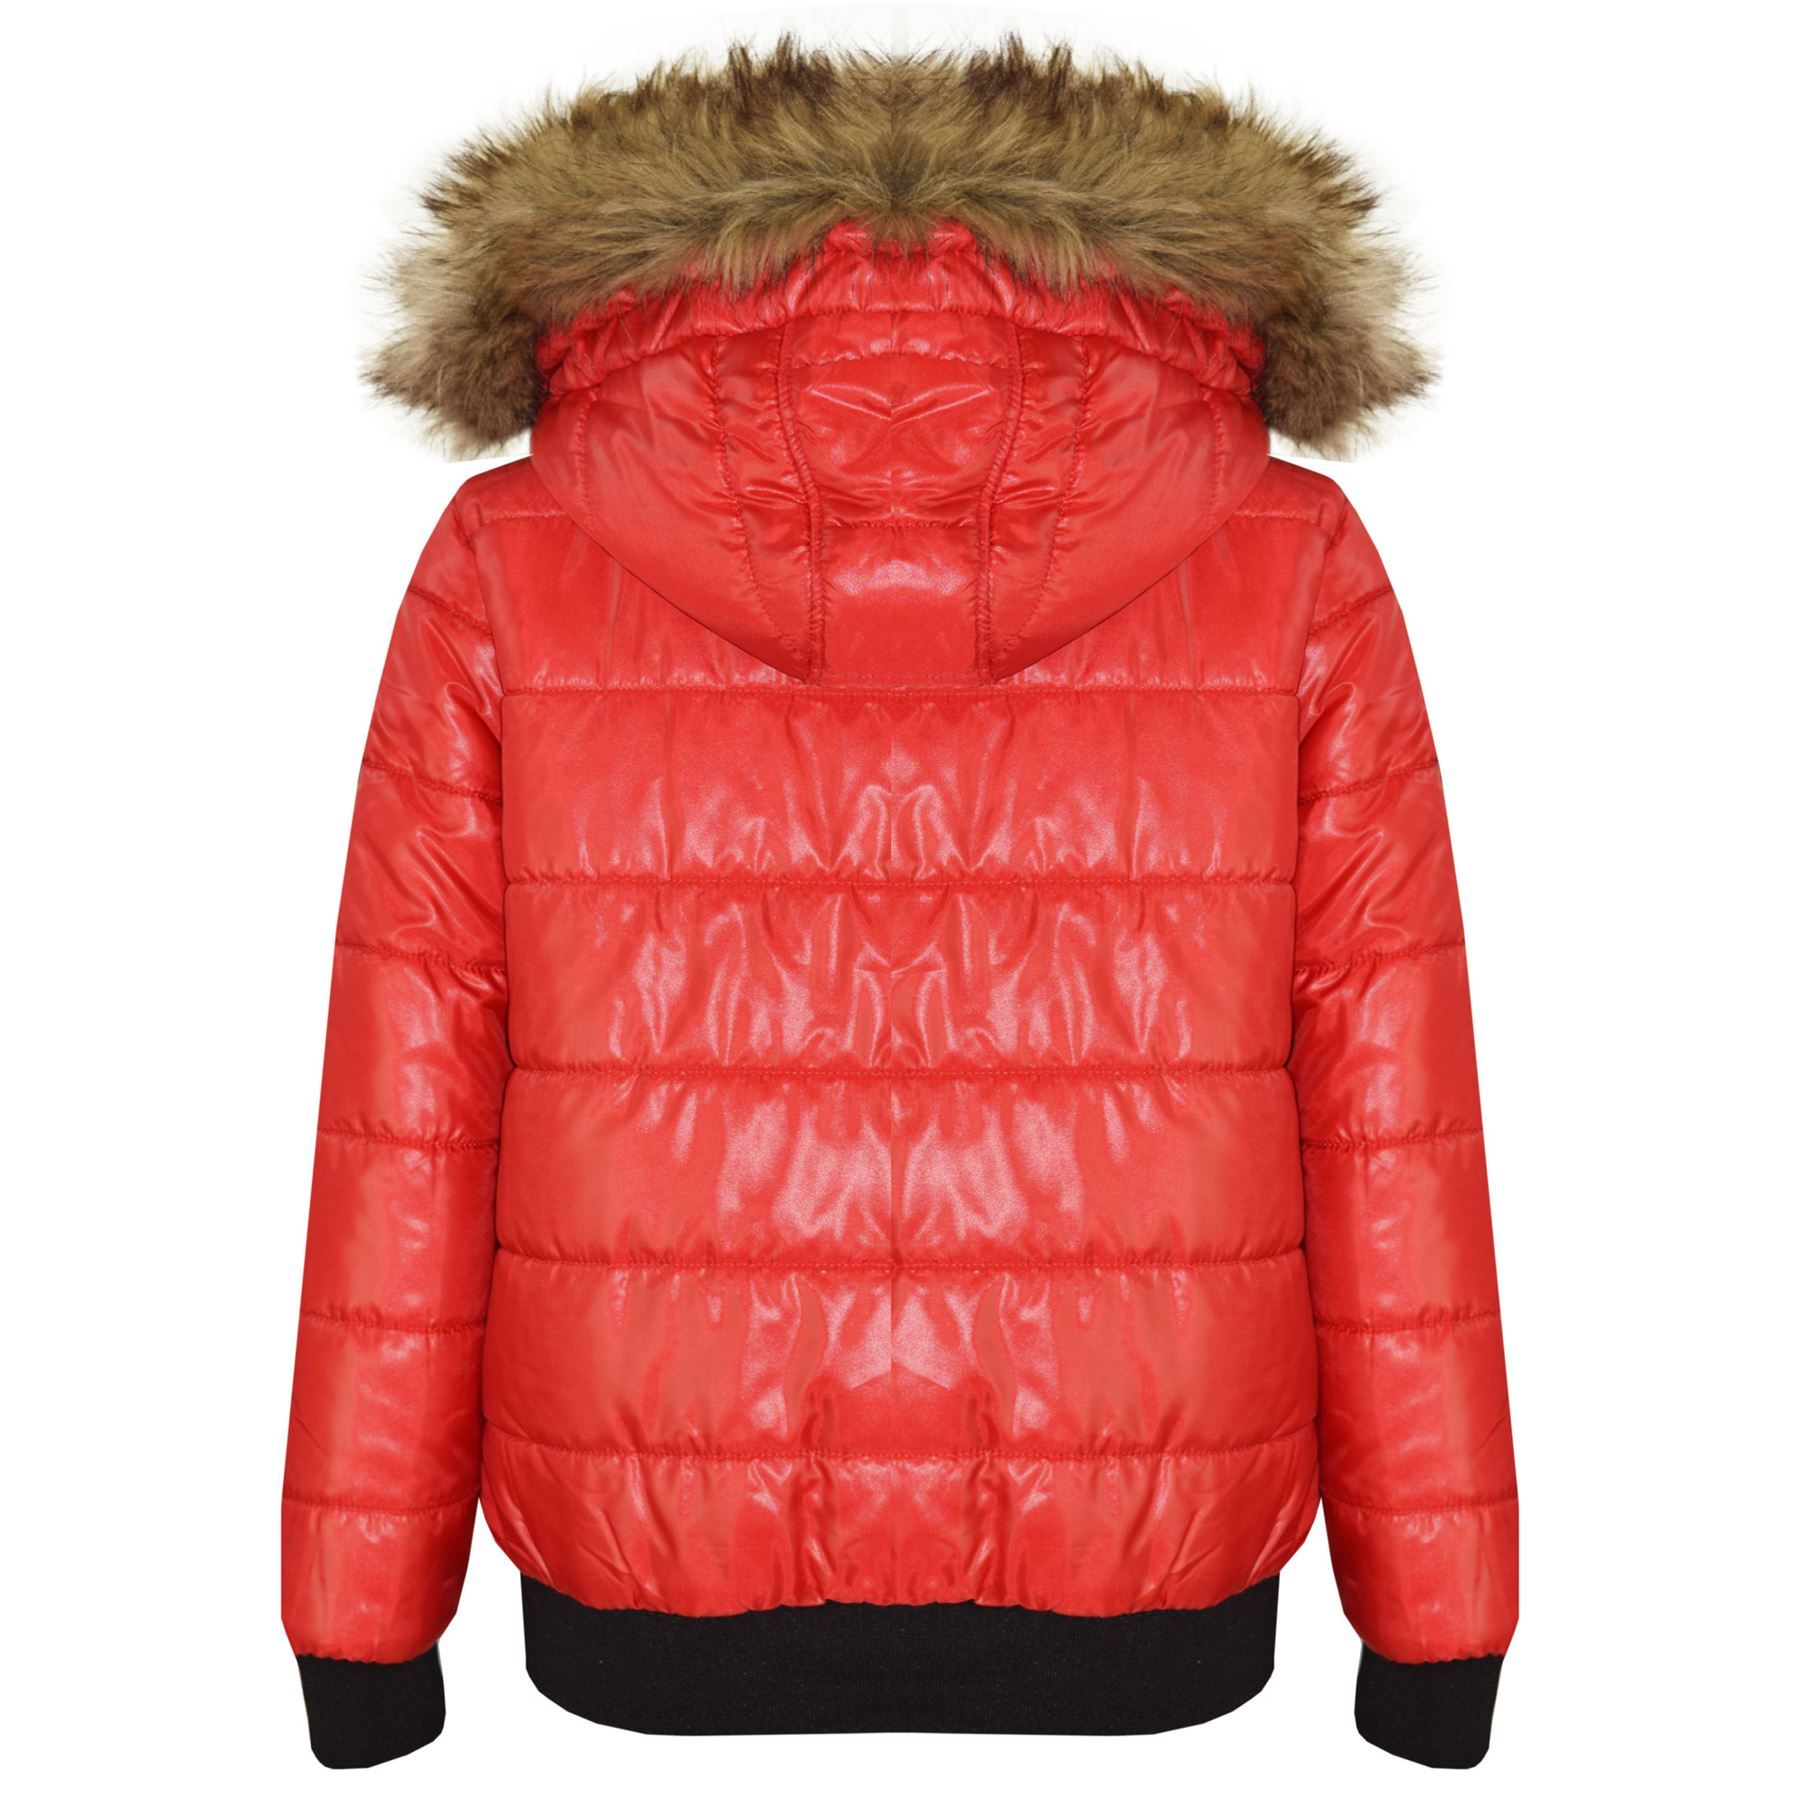 94dff86b0 Details about Boys Girls Jackets Kids Red Maya Faux Fur Hooded Padded  Puffer Bubble Coats 5-13